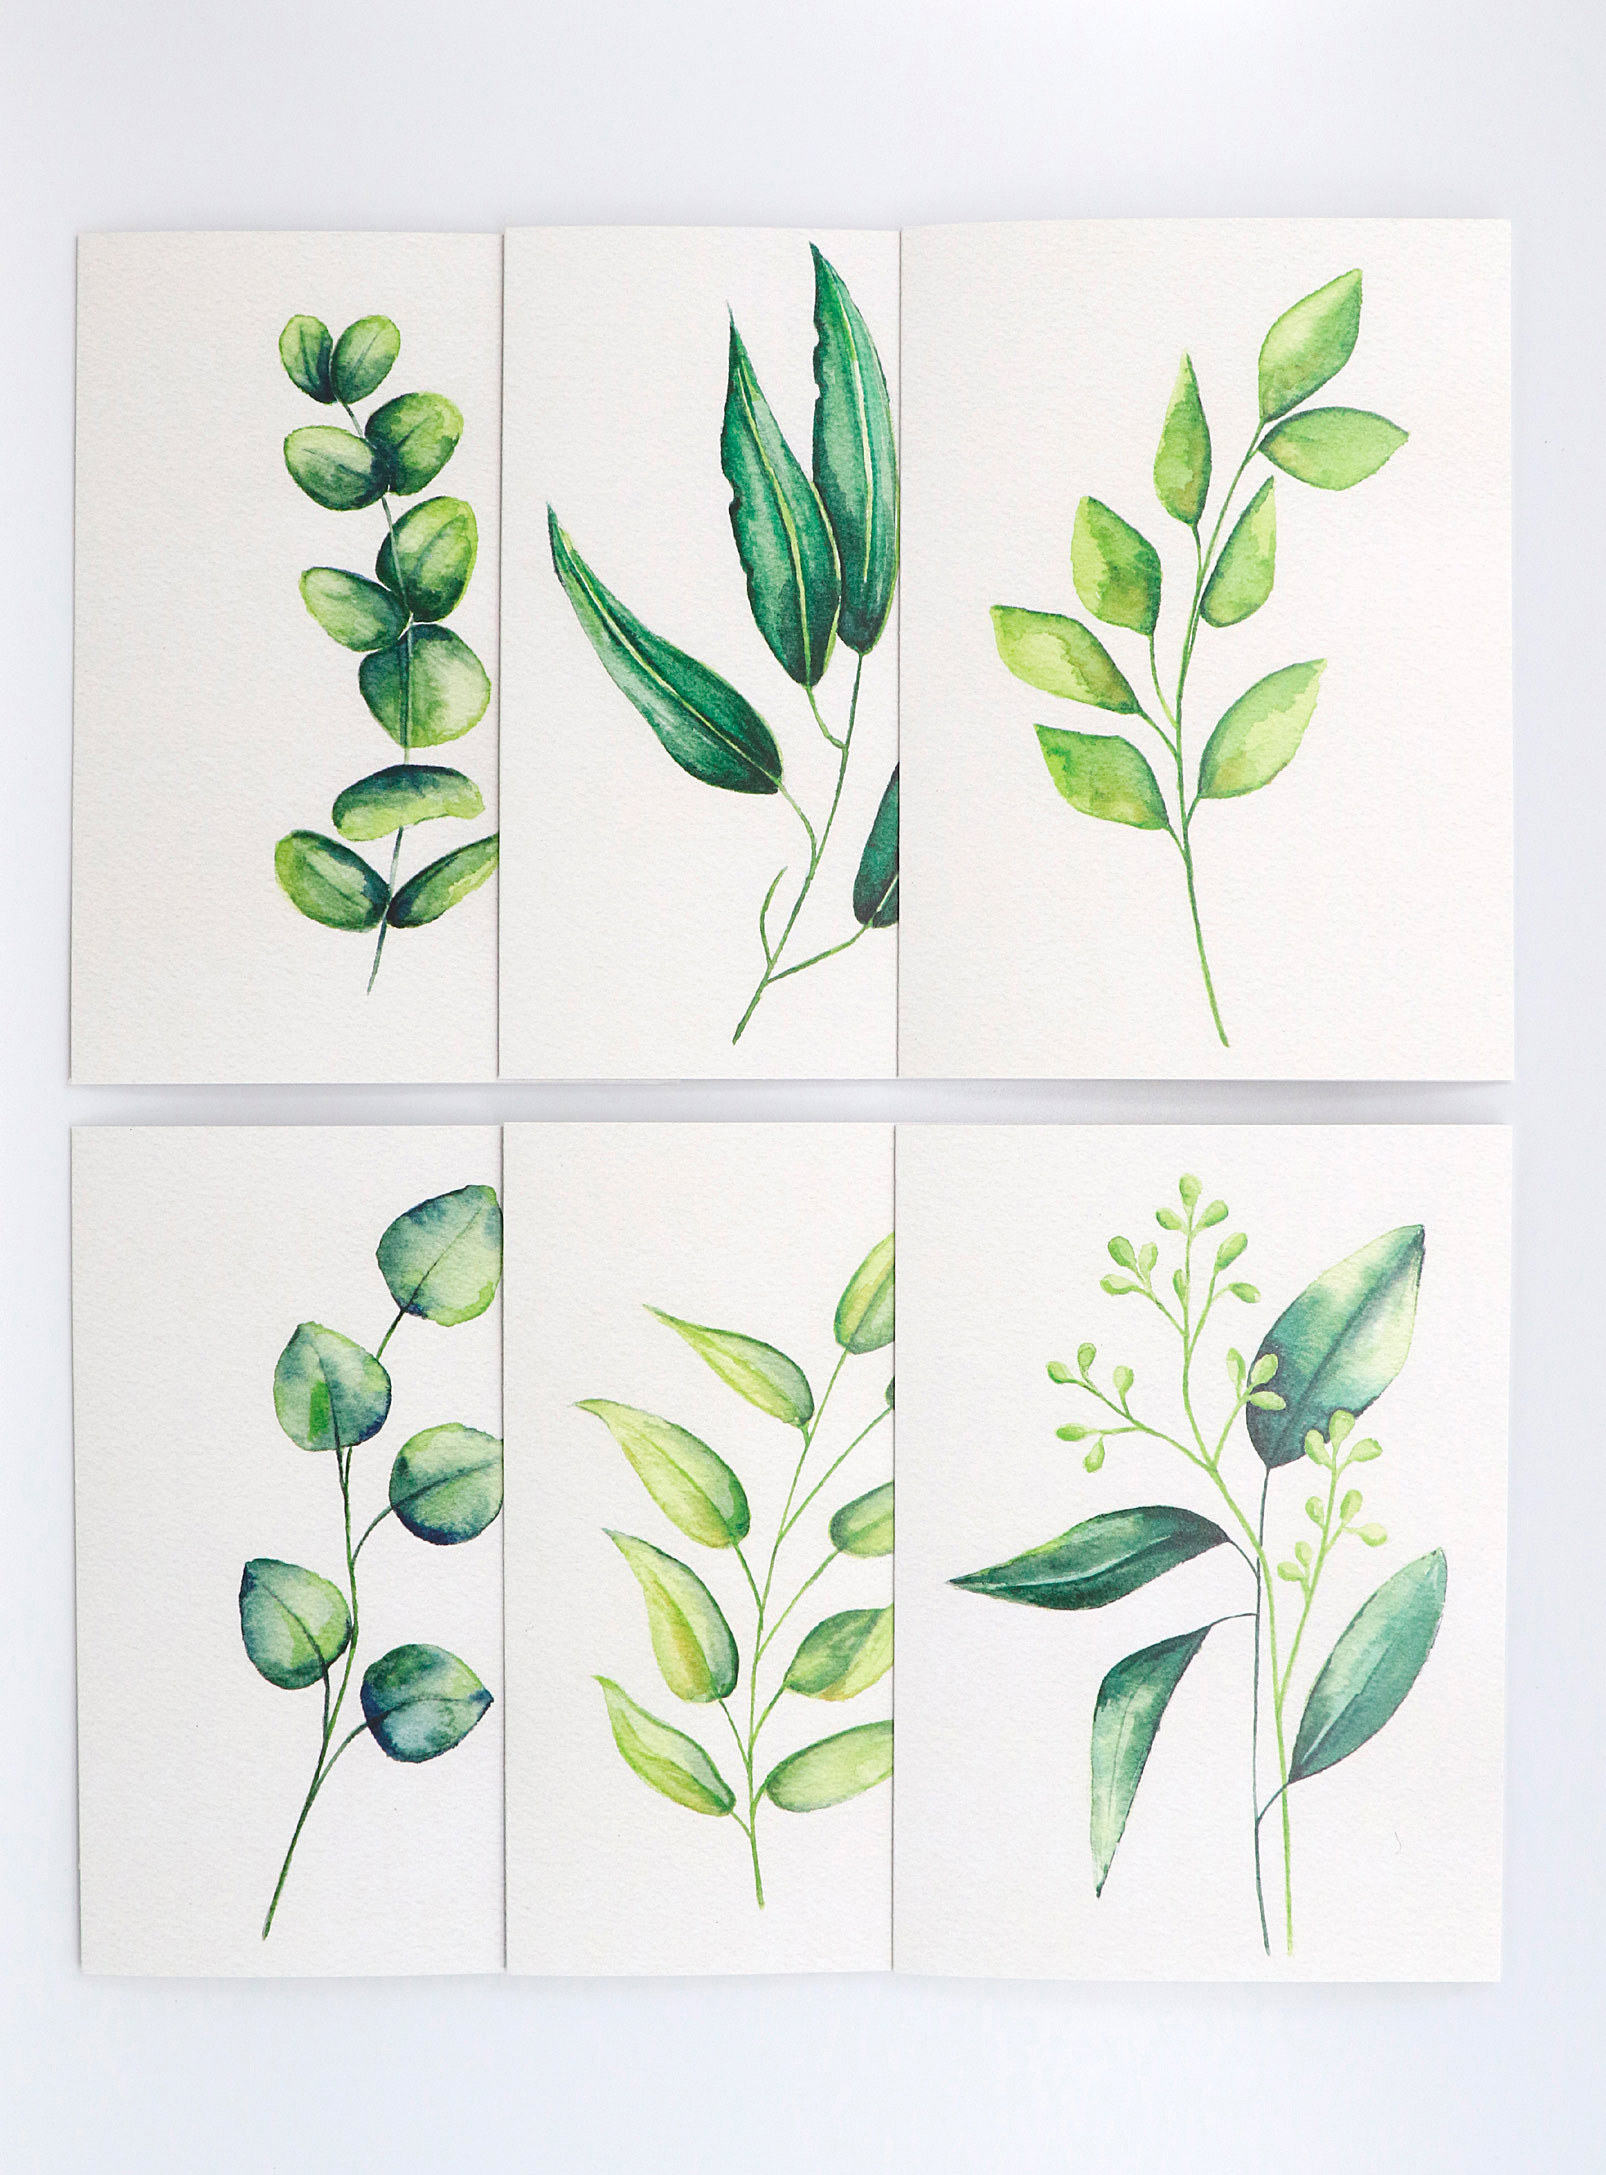 Six greeting cards on a plain background